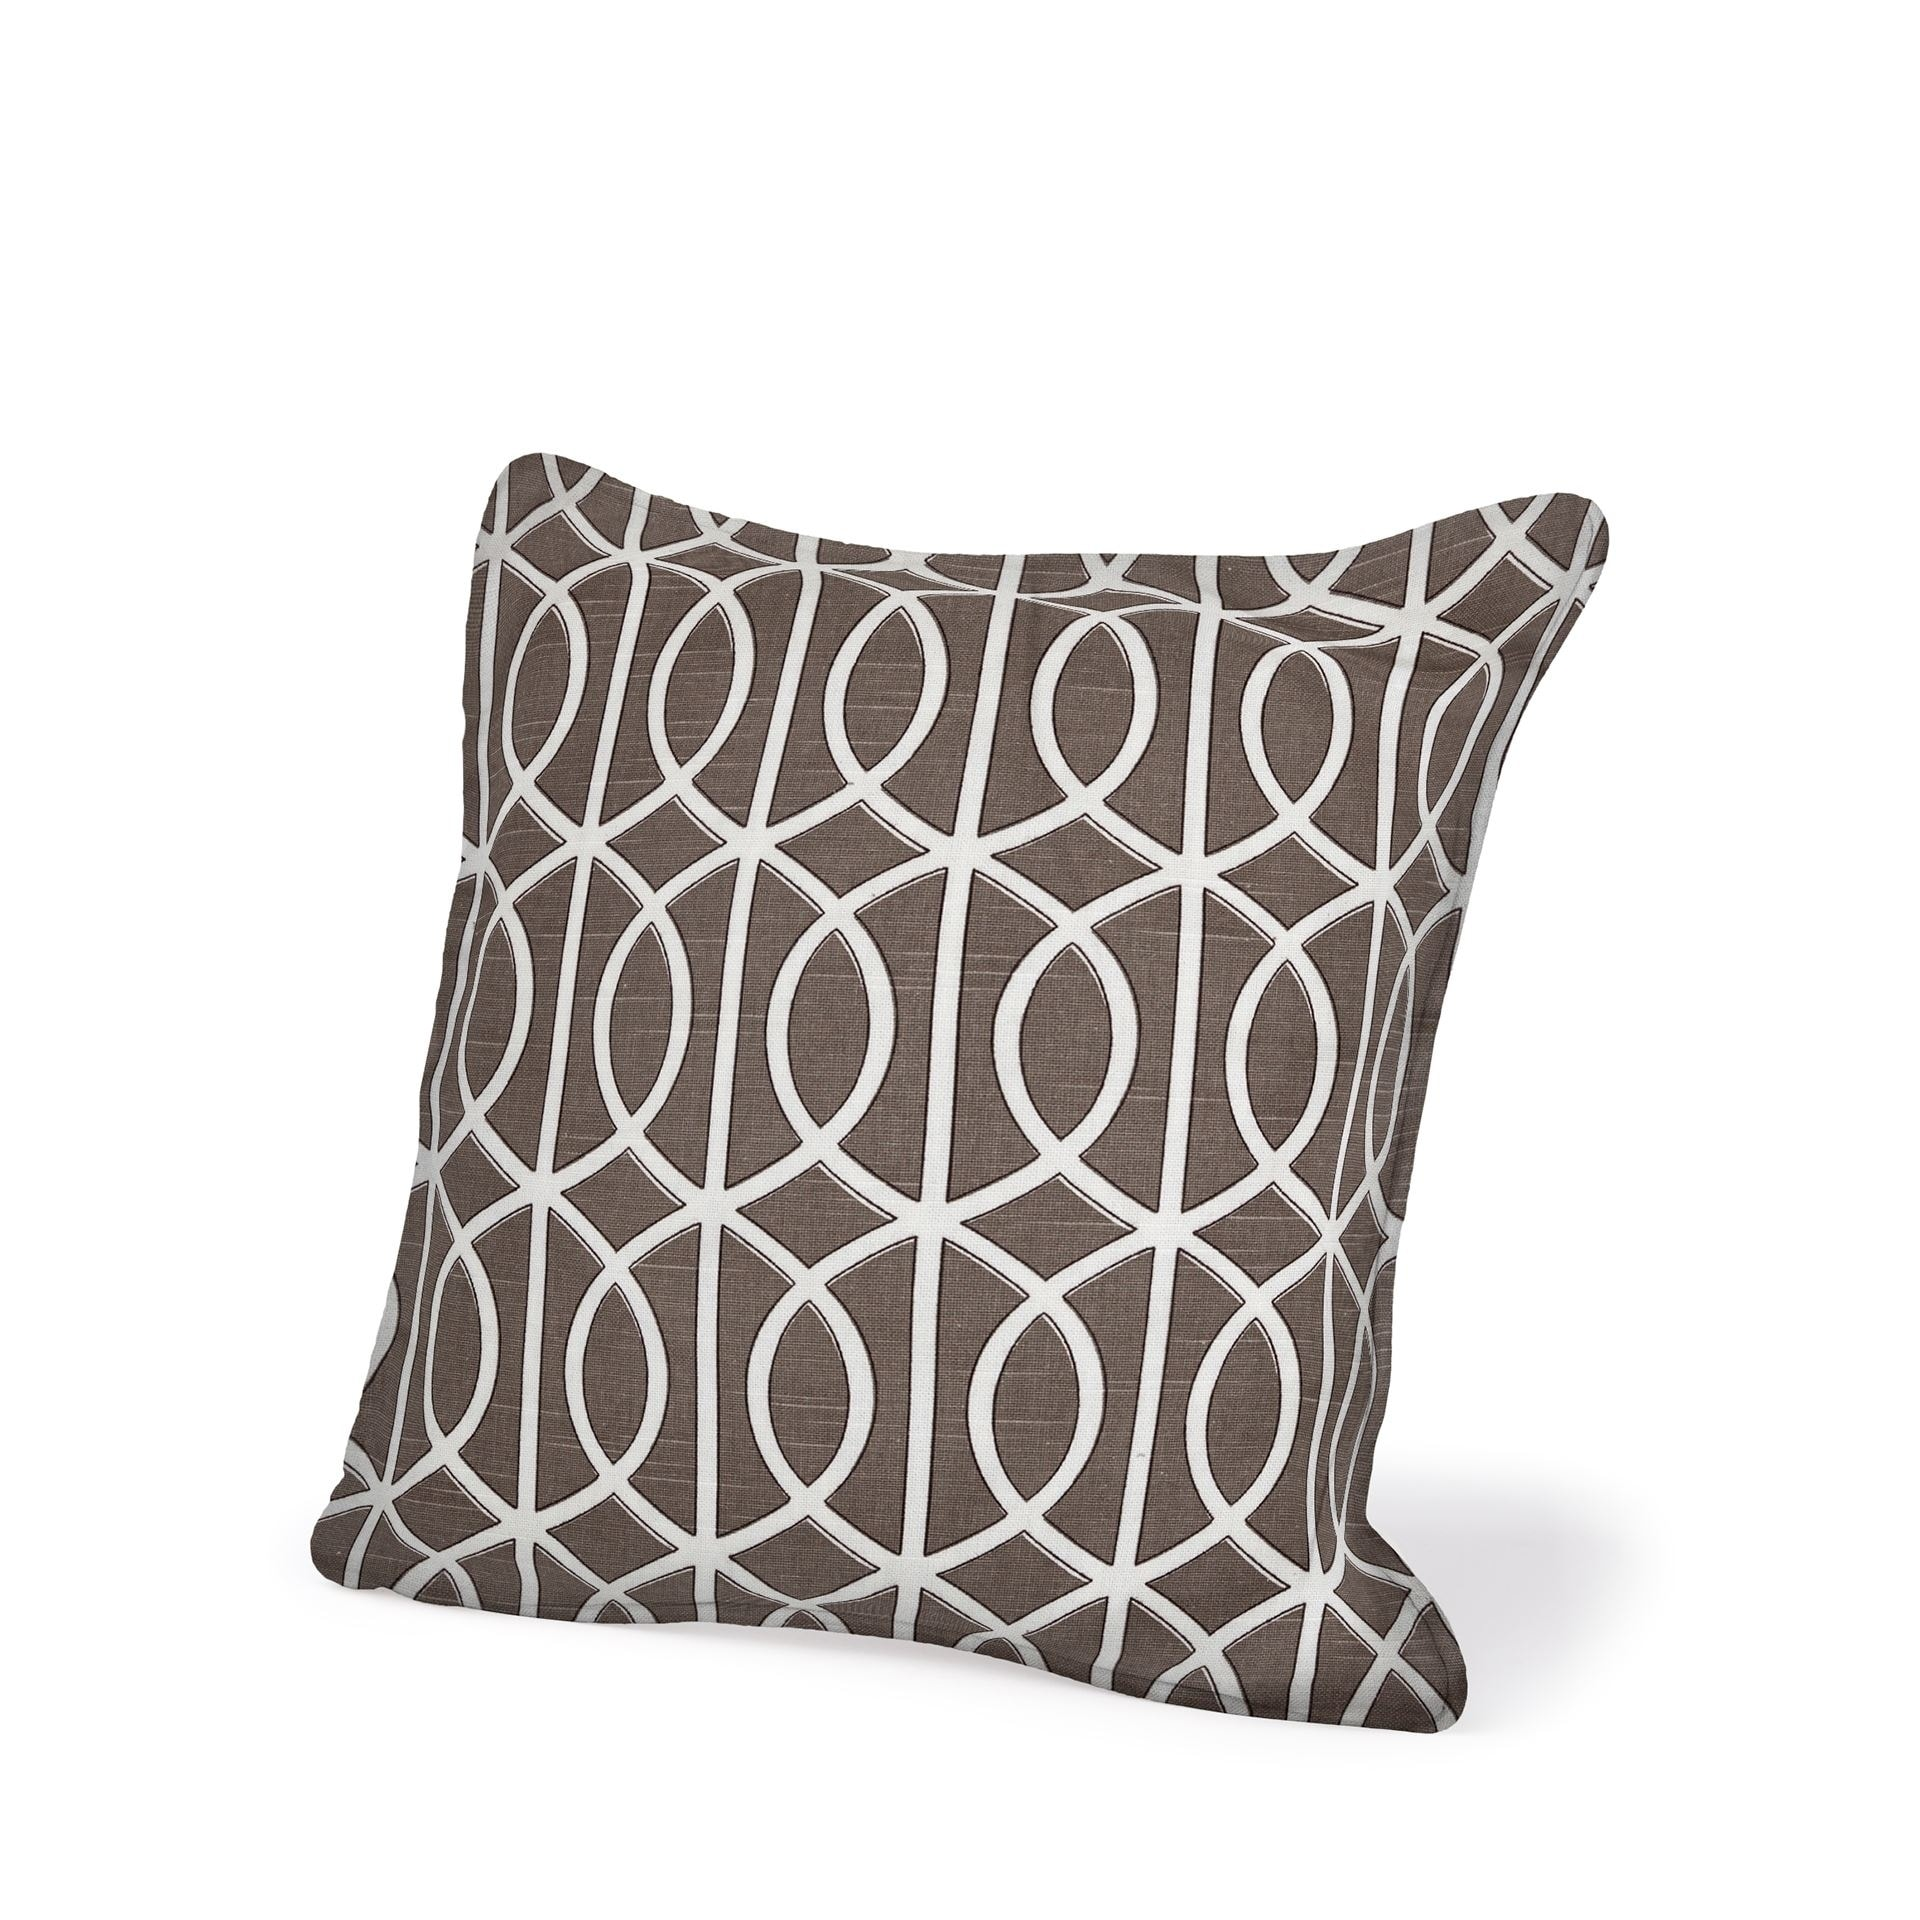 Mercana Heather I 18 x 18 (cover only) Decorative Pillow